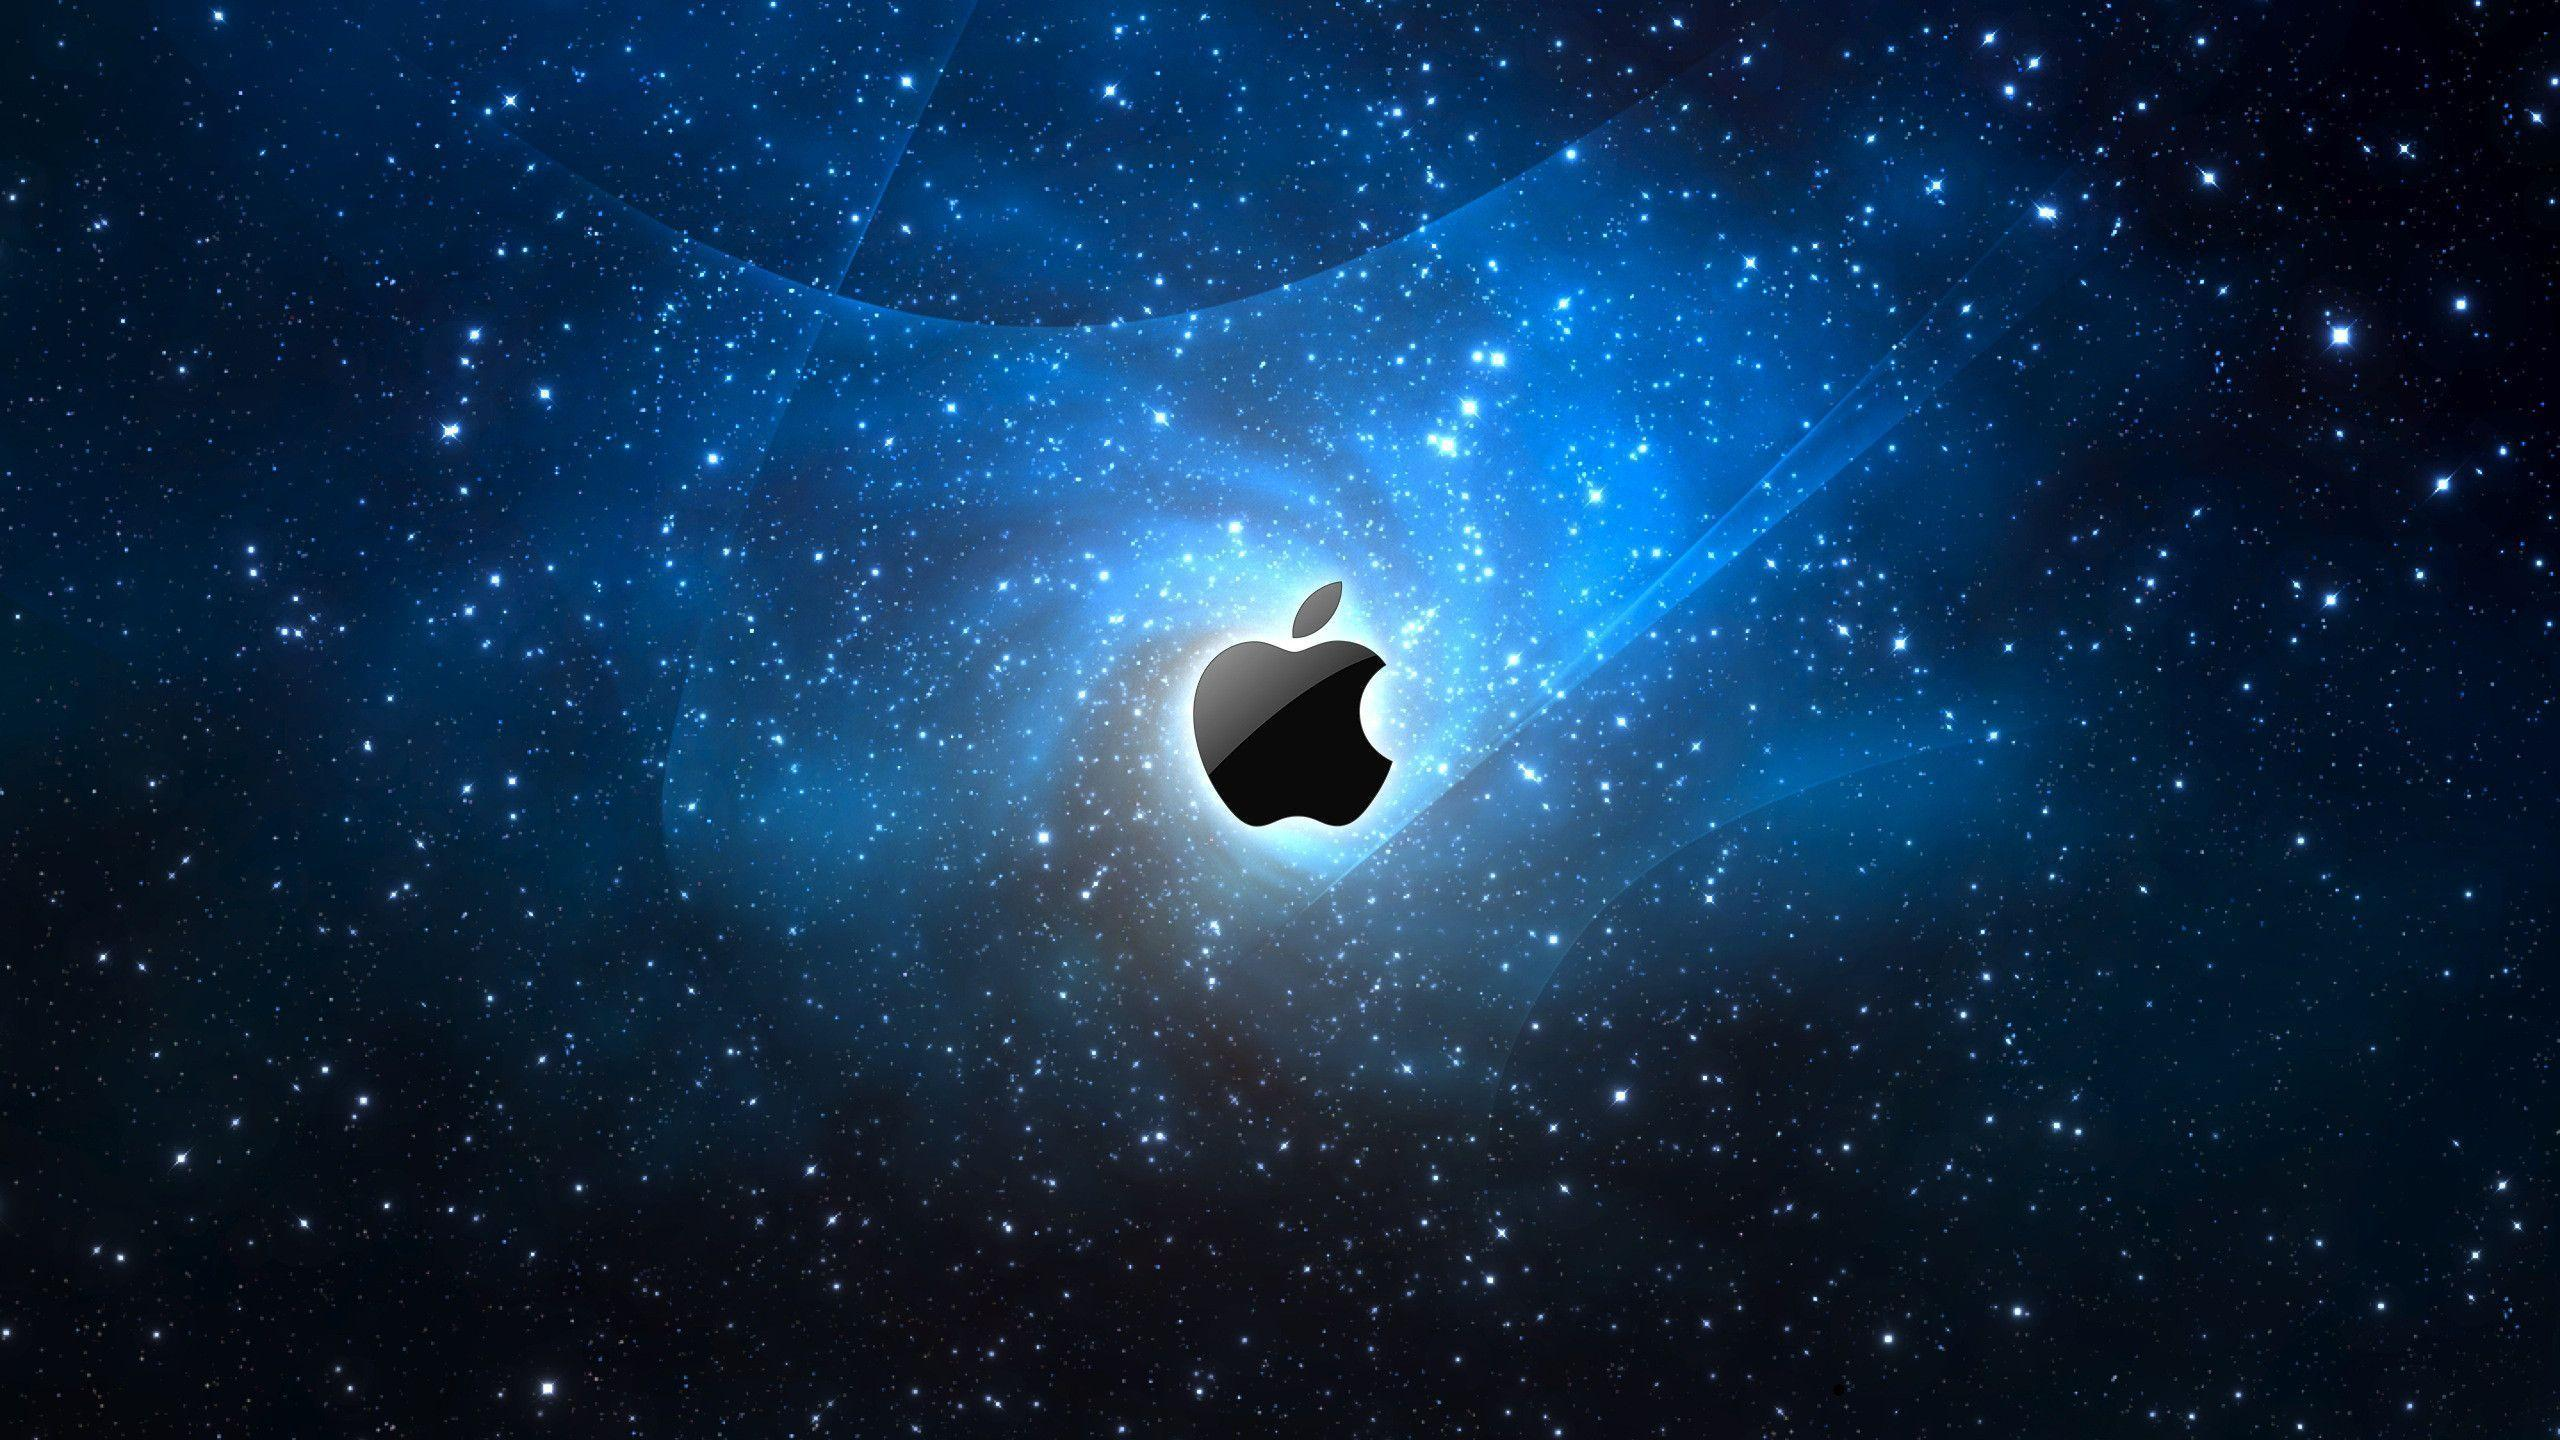 imac 27 backgrounds wallpaper cave